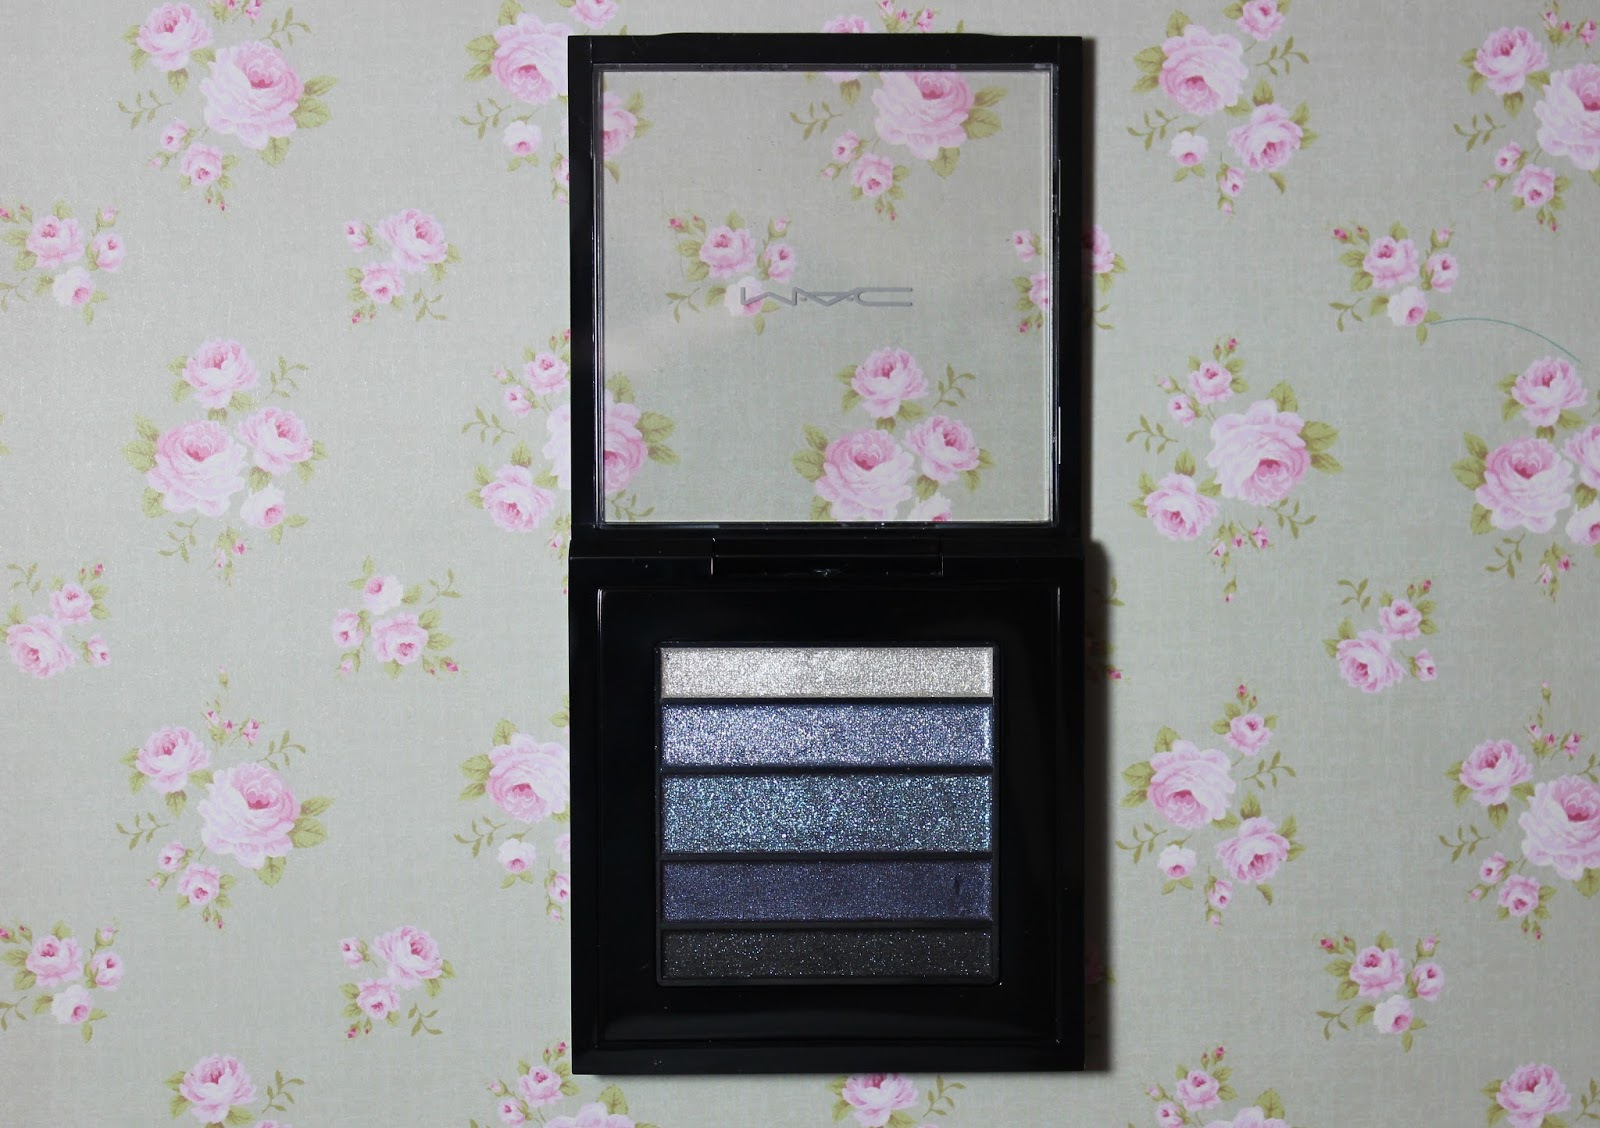 mac bleuluxe veluxe pearlfusion shadow review